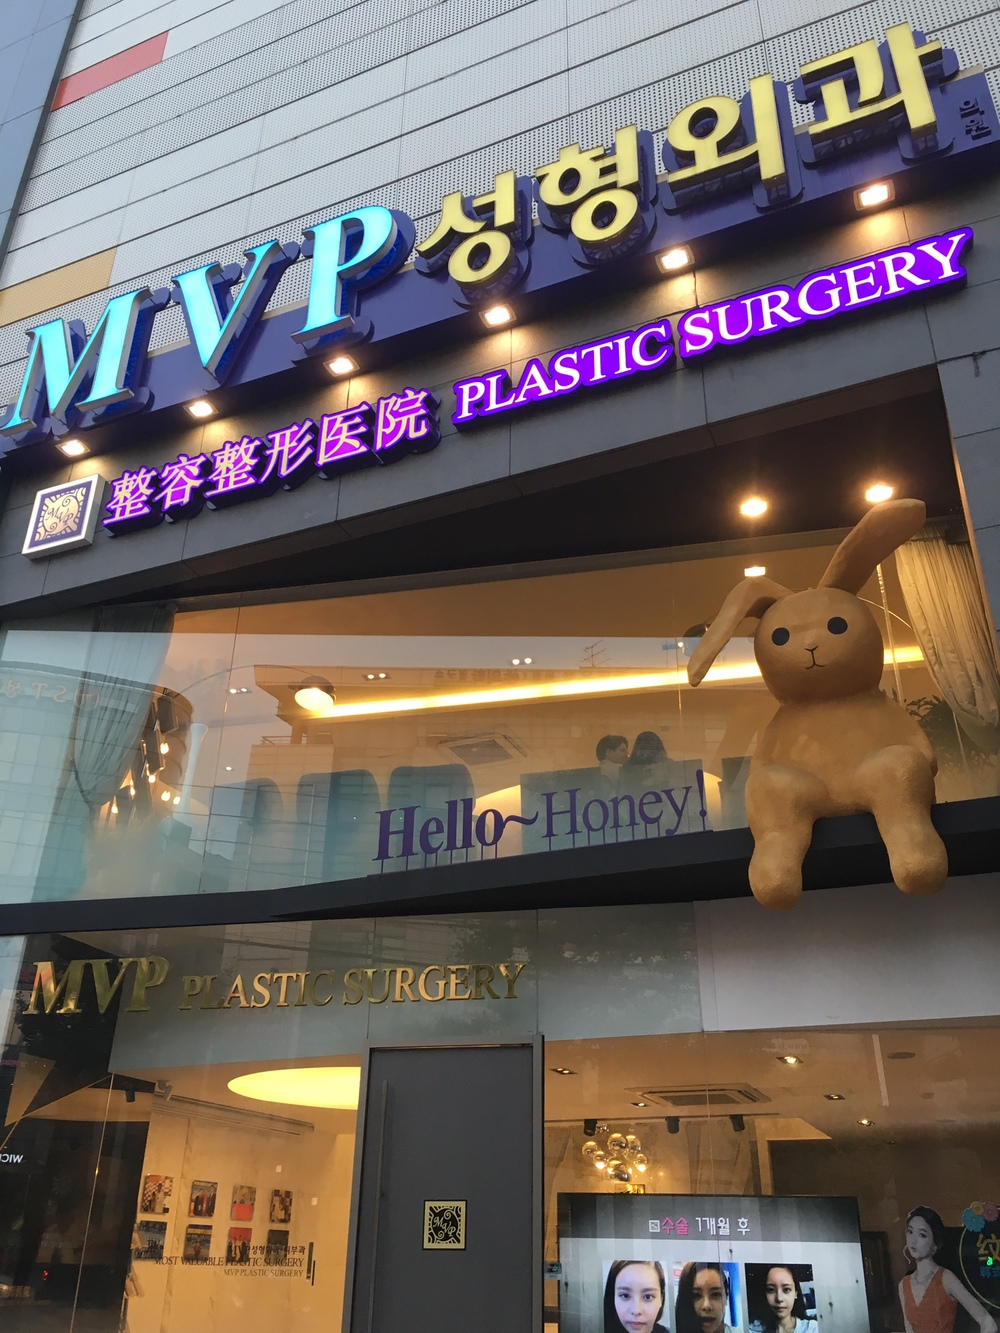 don't all plastic surgery clinics have a mascot?